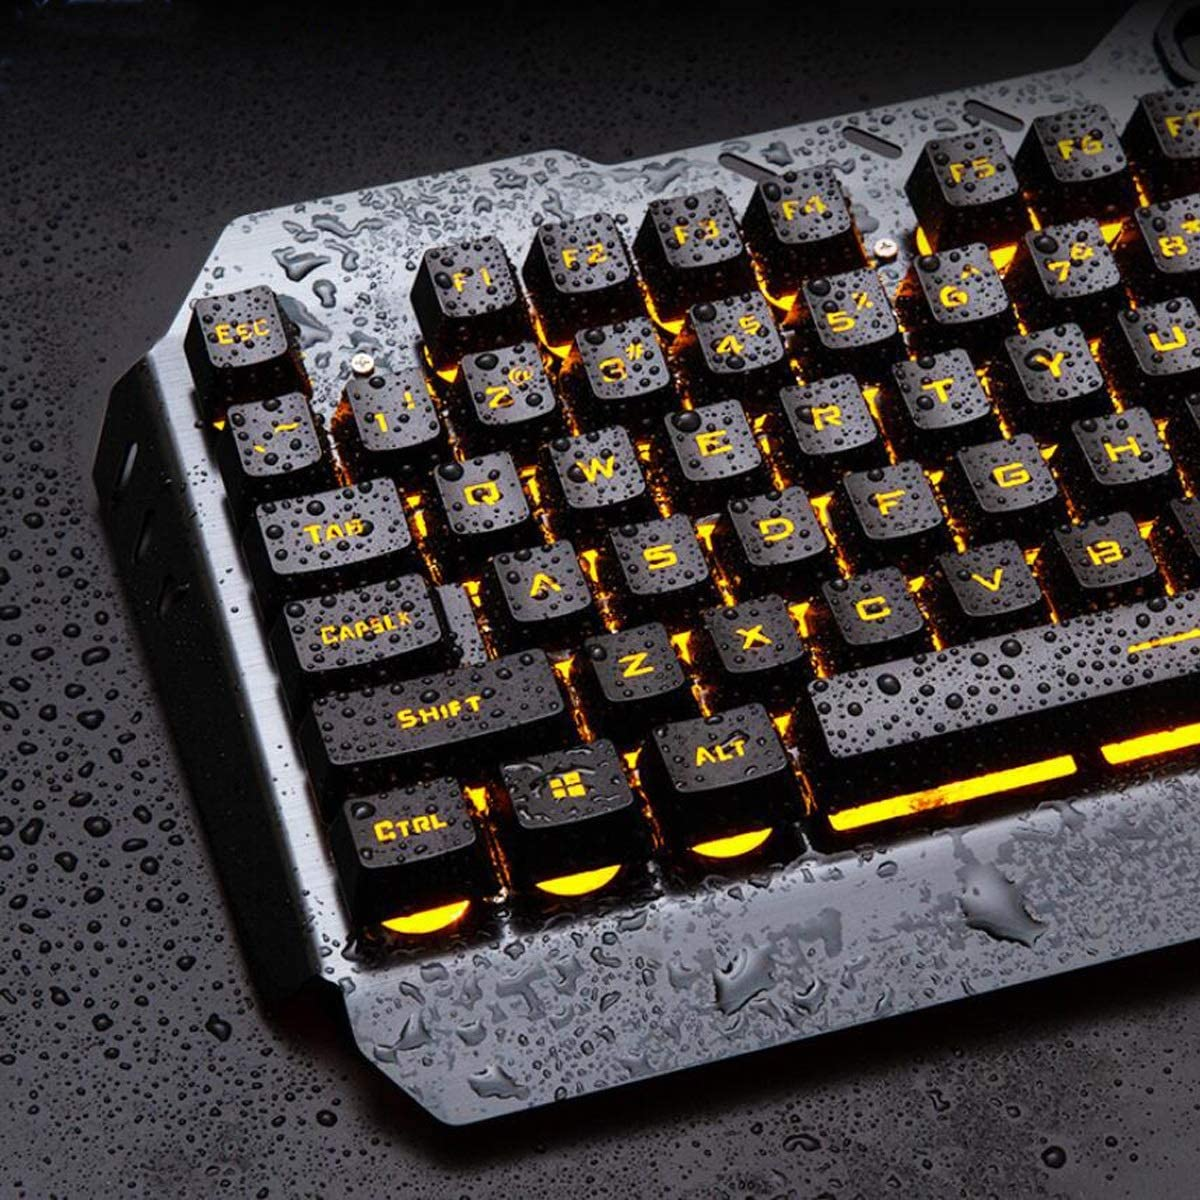 Gaoxingbianlidian Mechanical Keyboard Gaming Keyboard and Mouse Set Black Wired Metal Esports Backlight High-end Texture. Eating Chicken Mechanical Keyboard Color : Silver